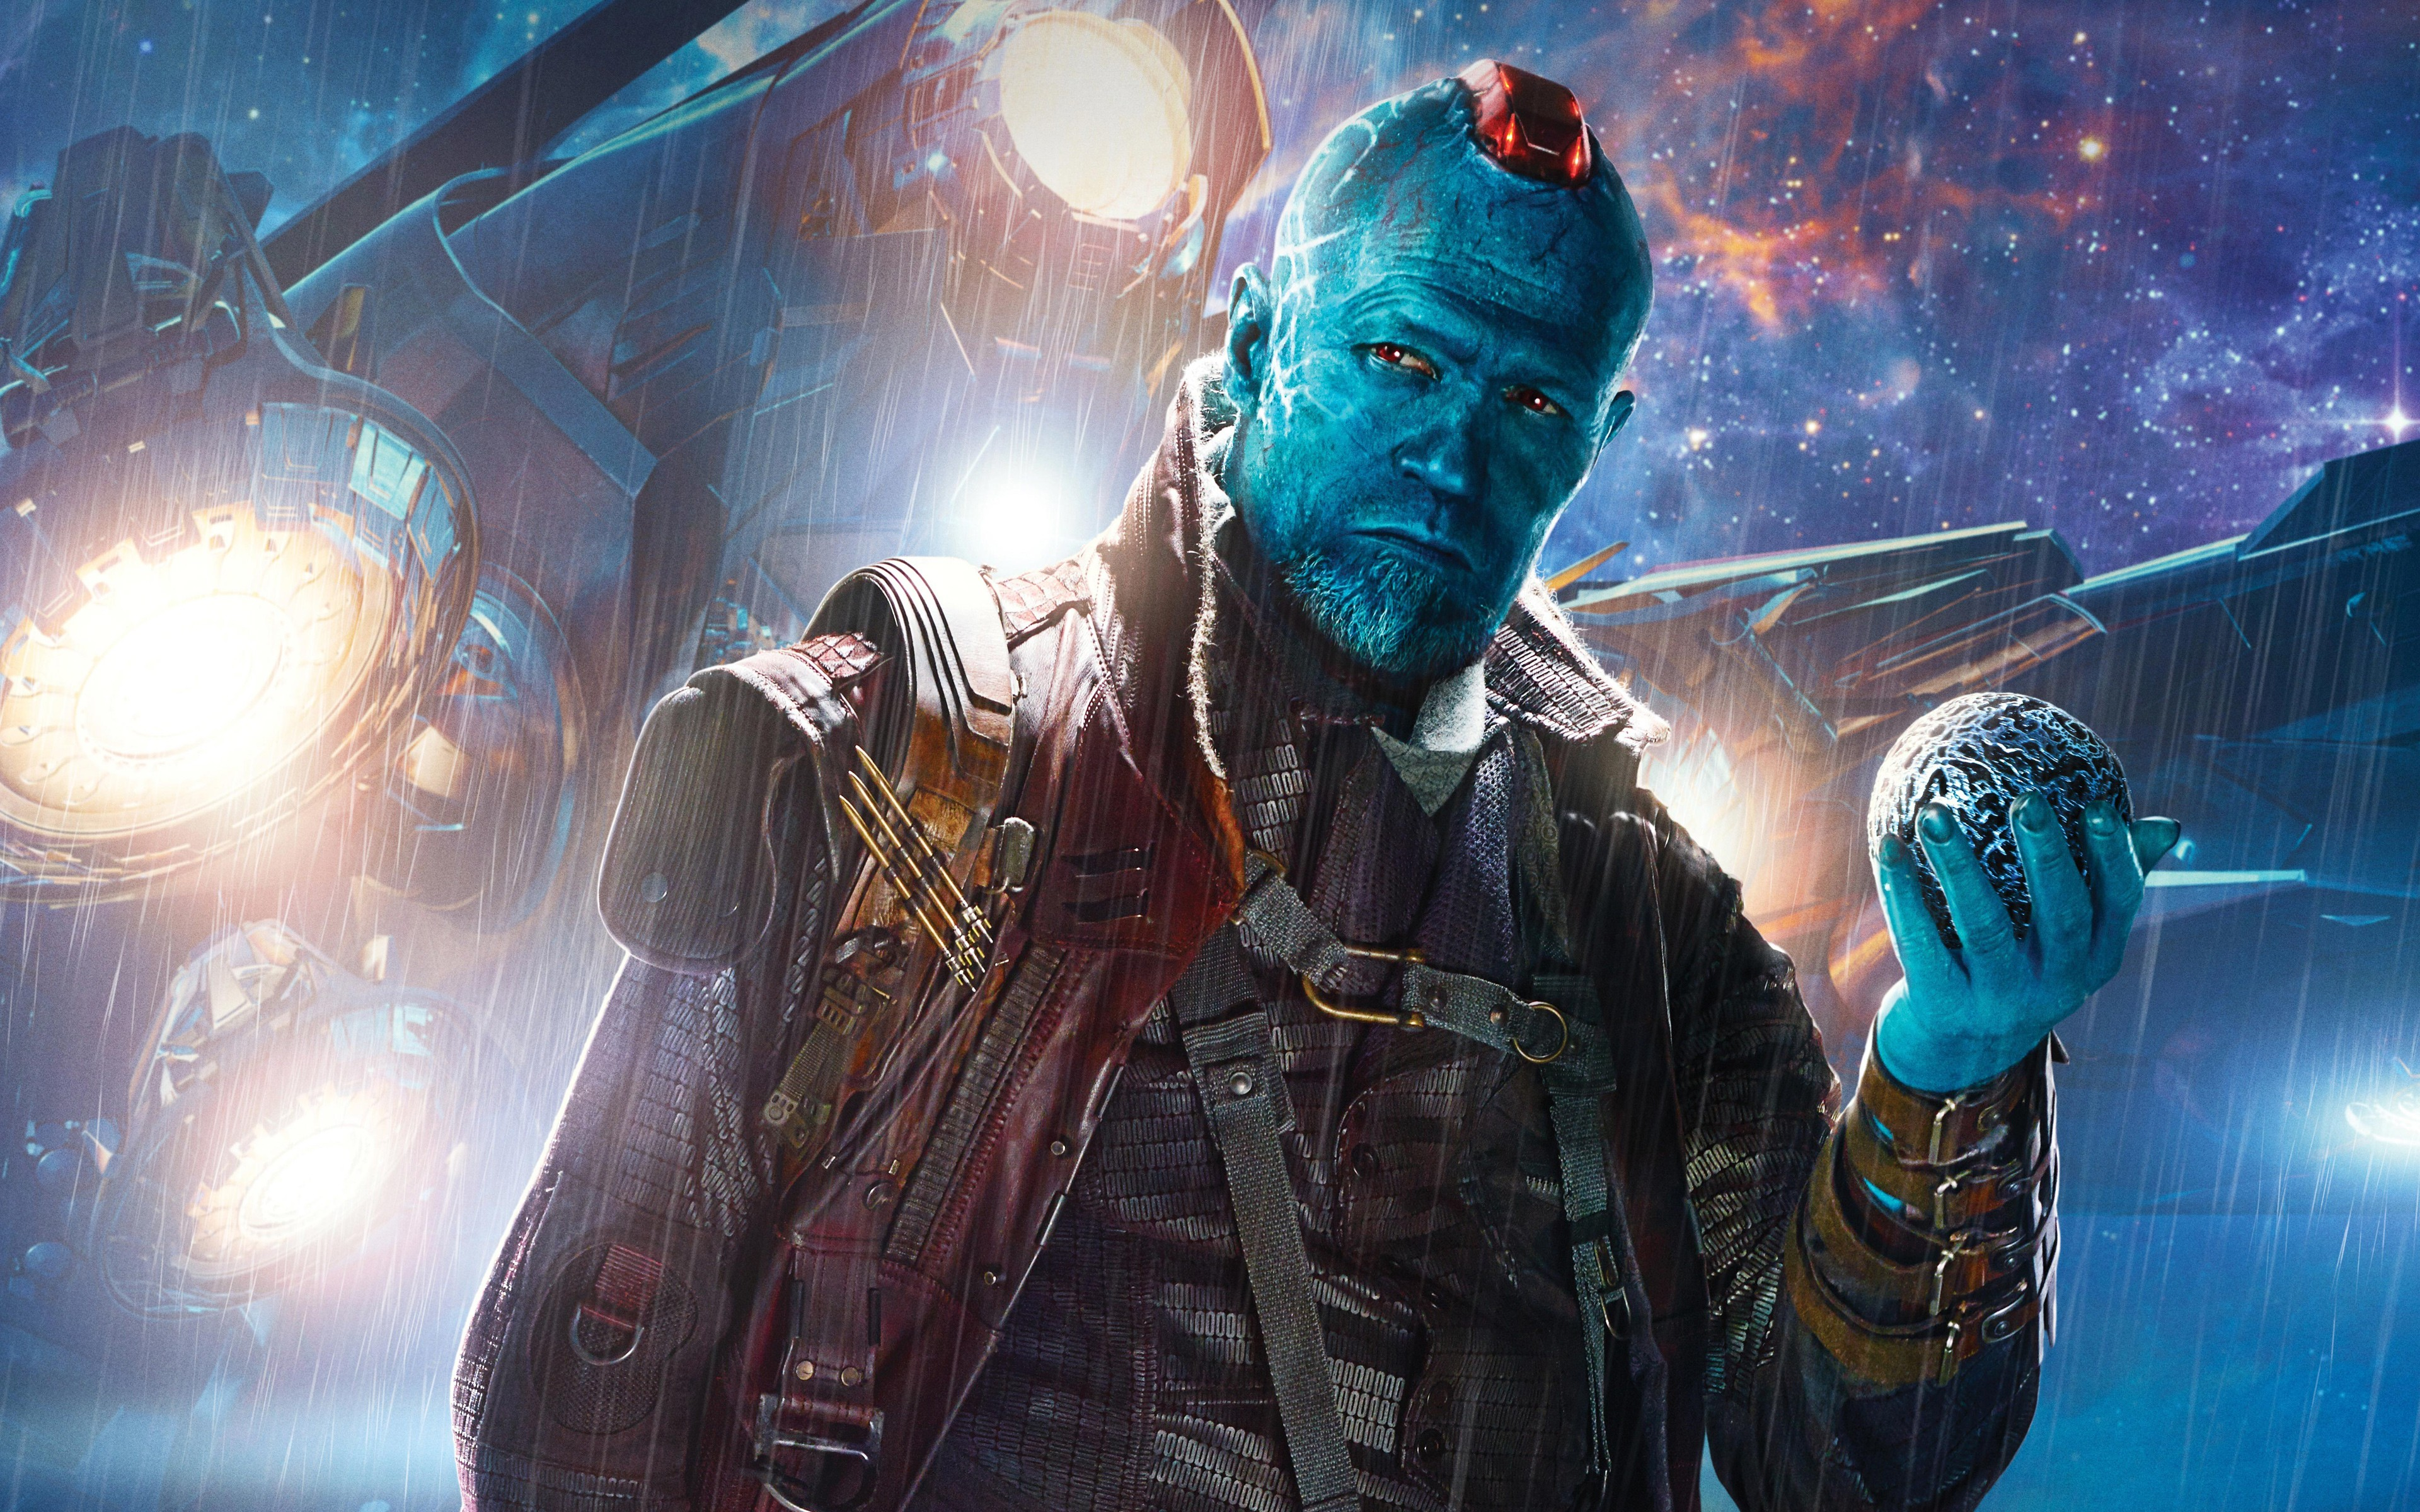 Hd 3d Snake Wallpapers Yondu Udonta Guardians Of The Galaxy Vol 2 5k Wallpapers